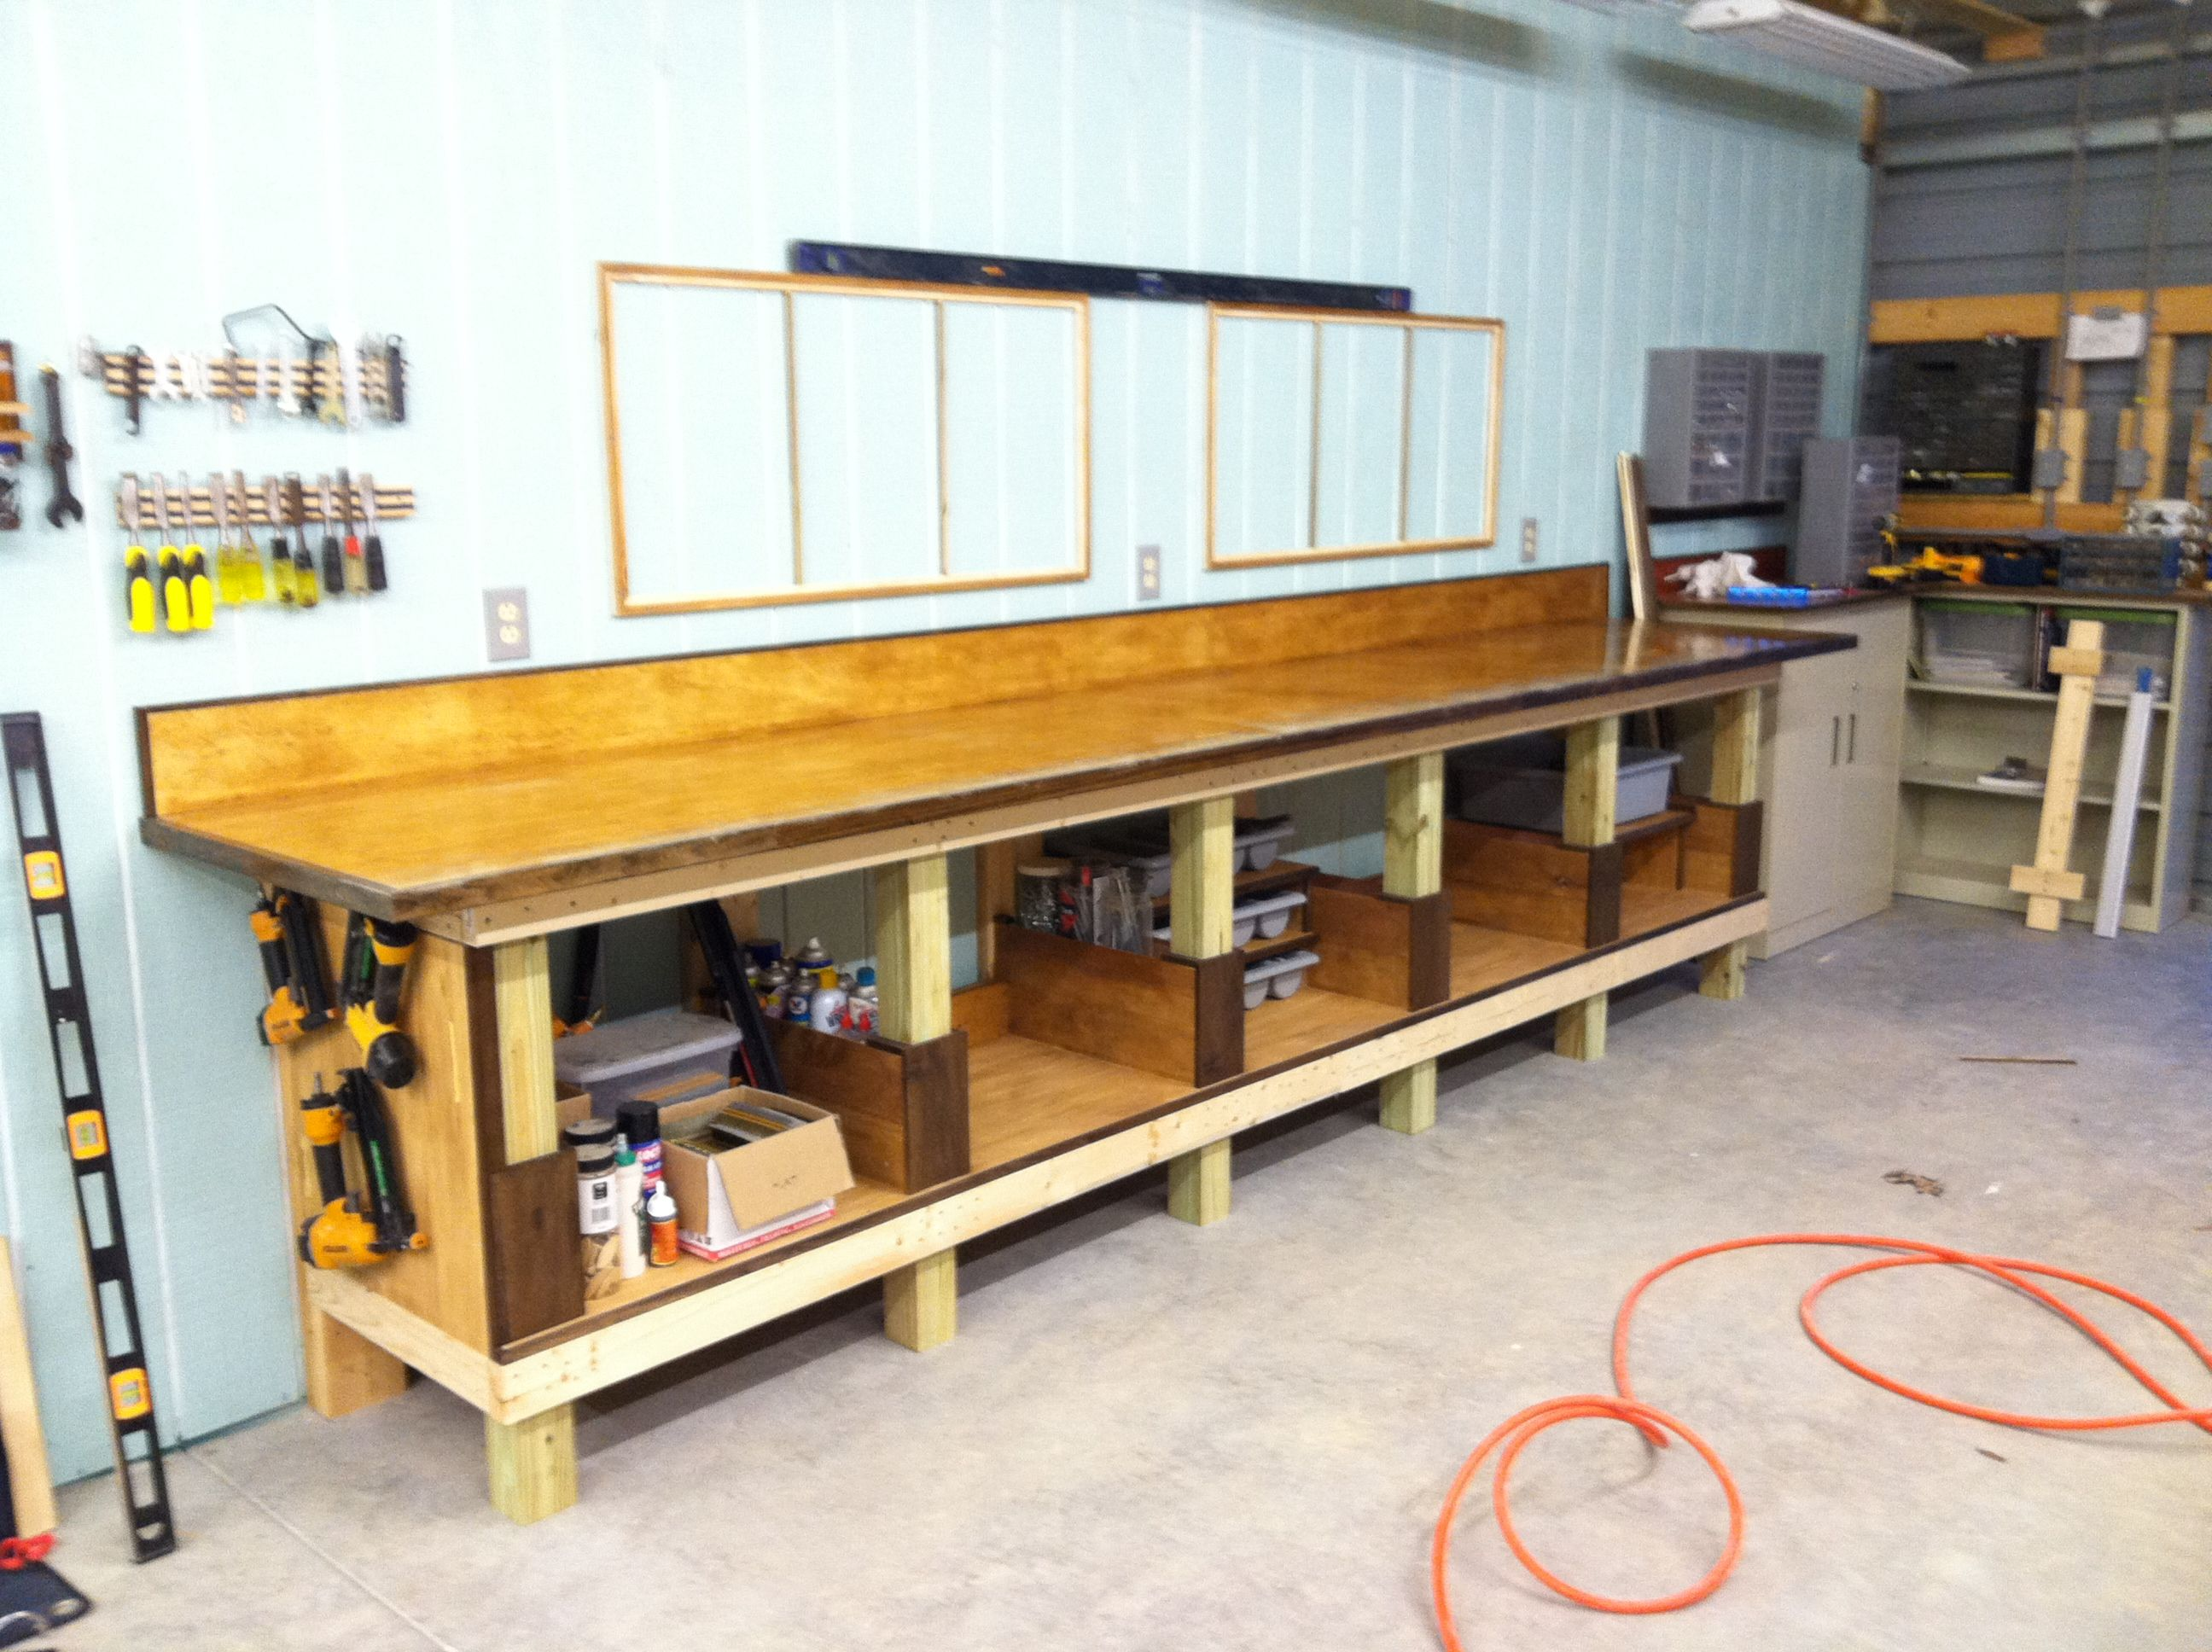 Garage Workbench And Storage Finished Shop Work Bench With Shelving And Storage Insets